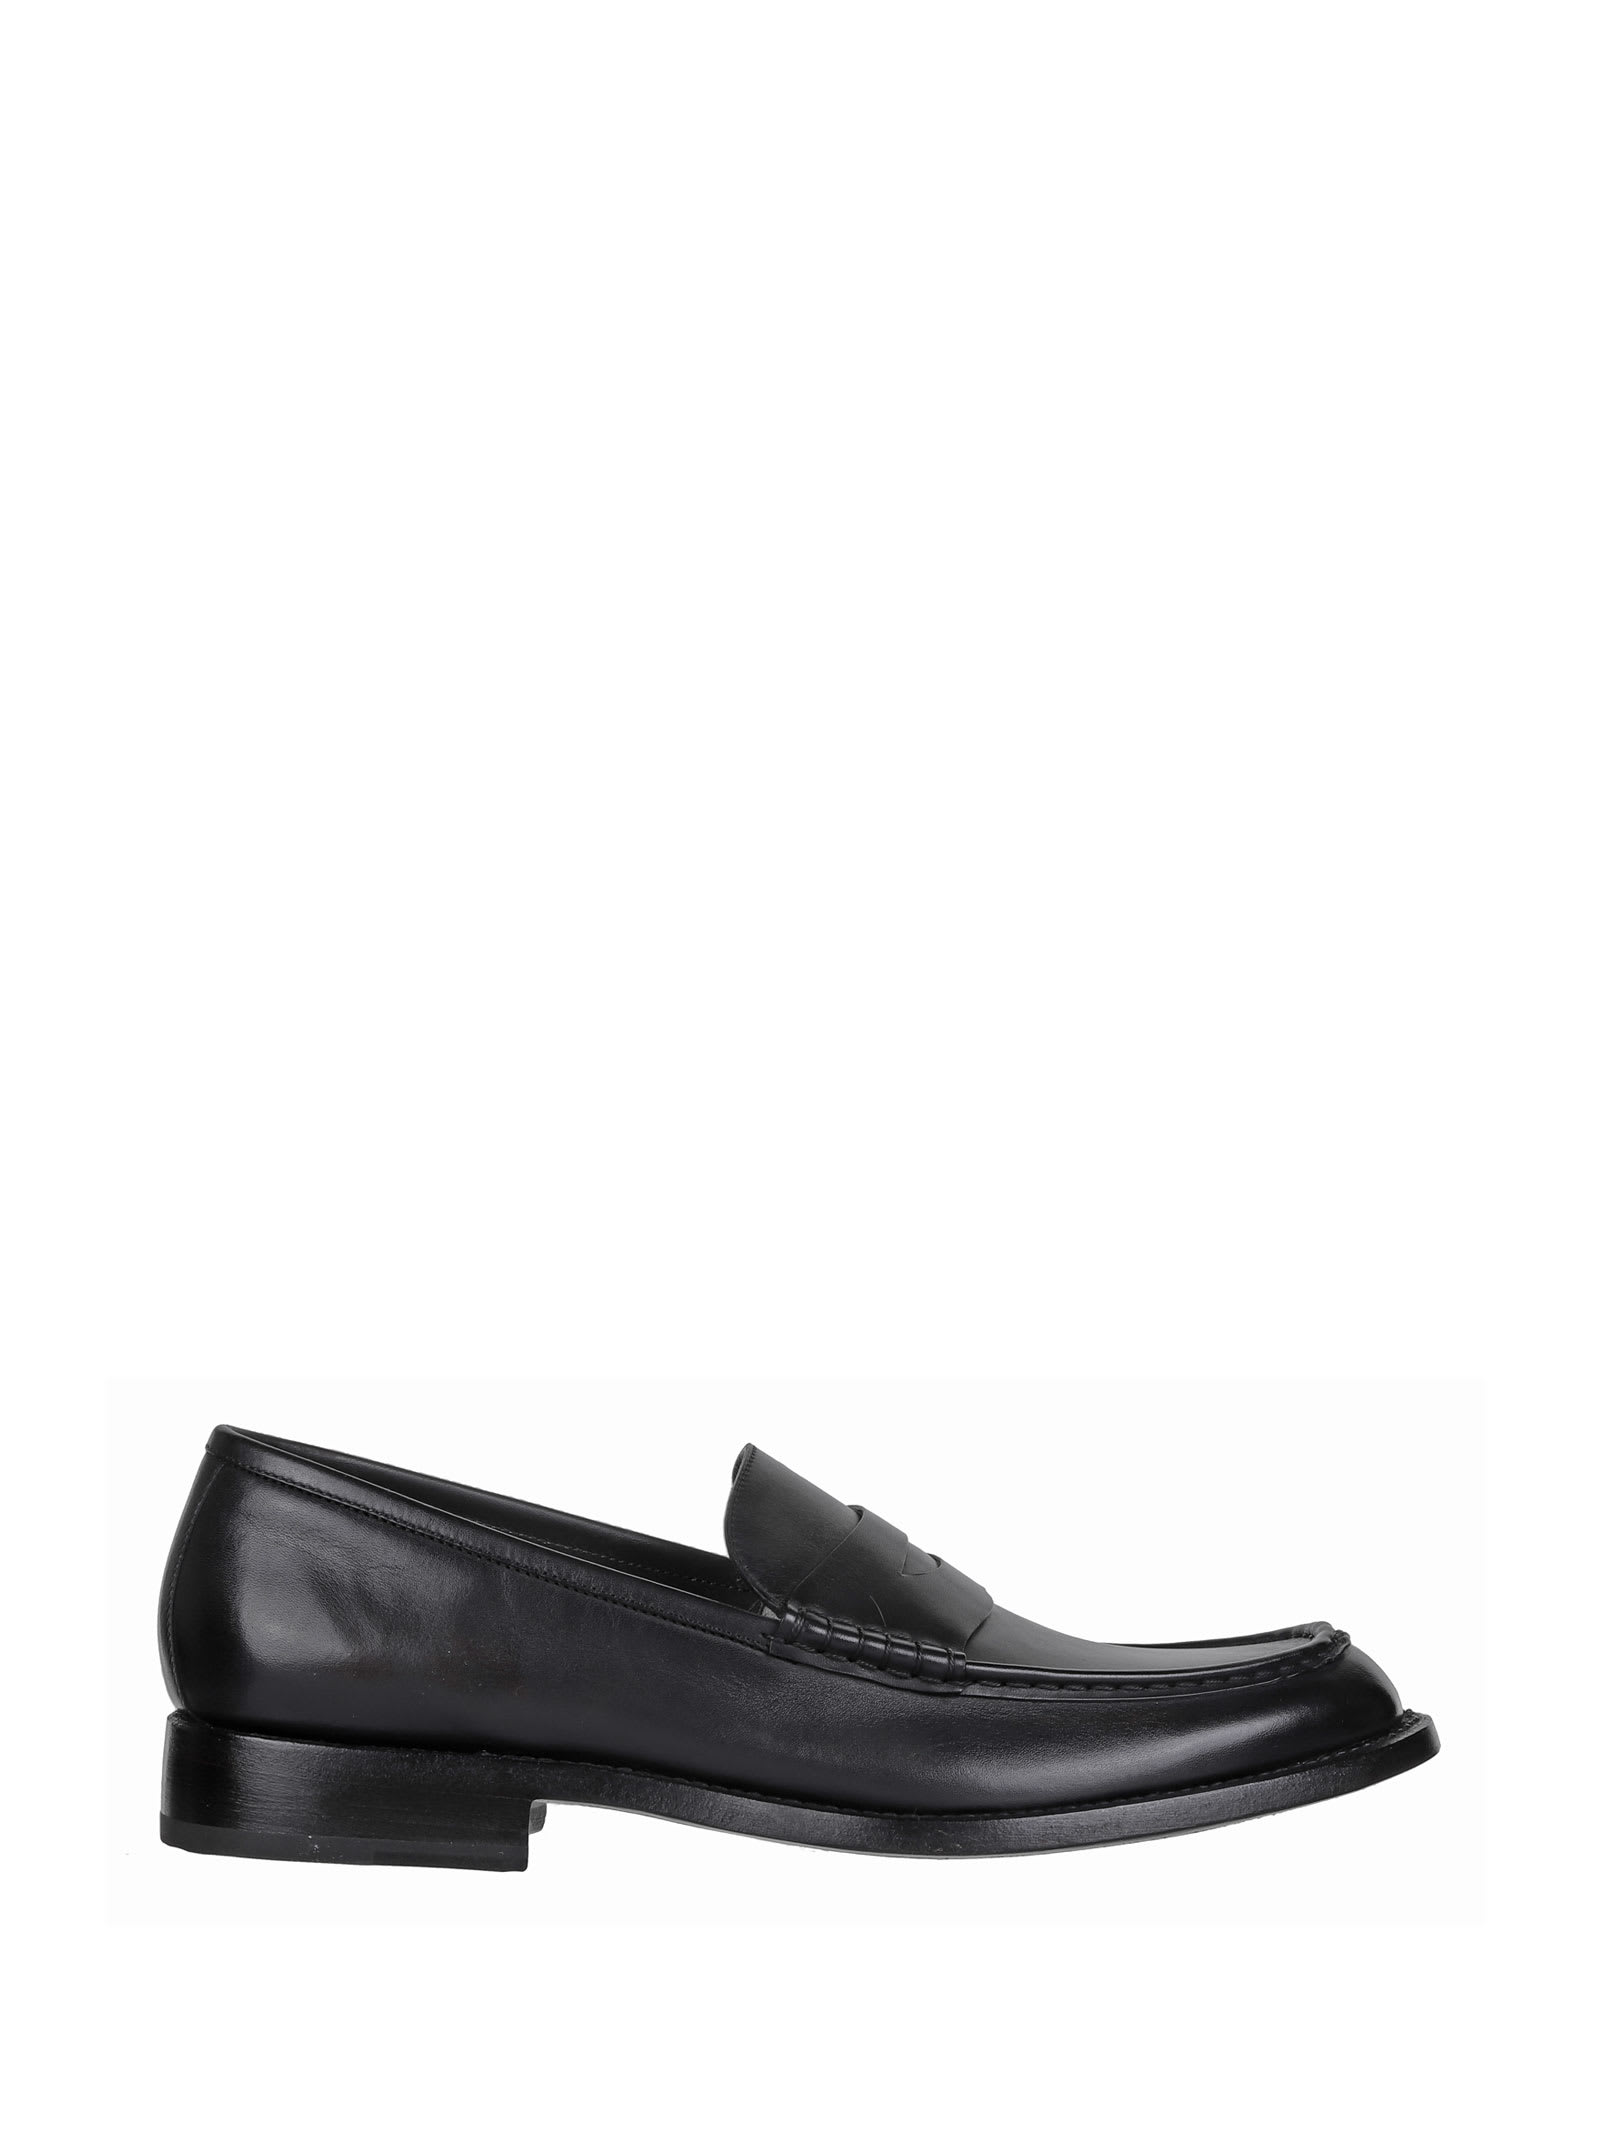 Barrett Loafers In Black Leather